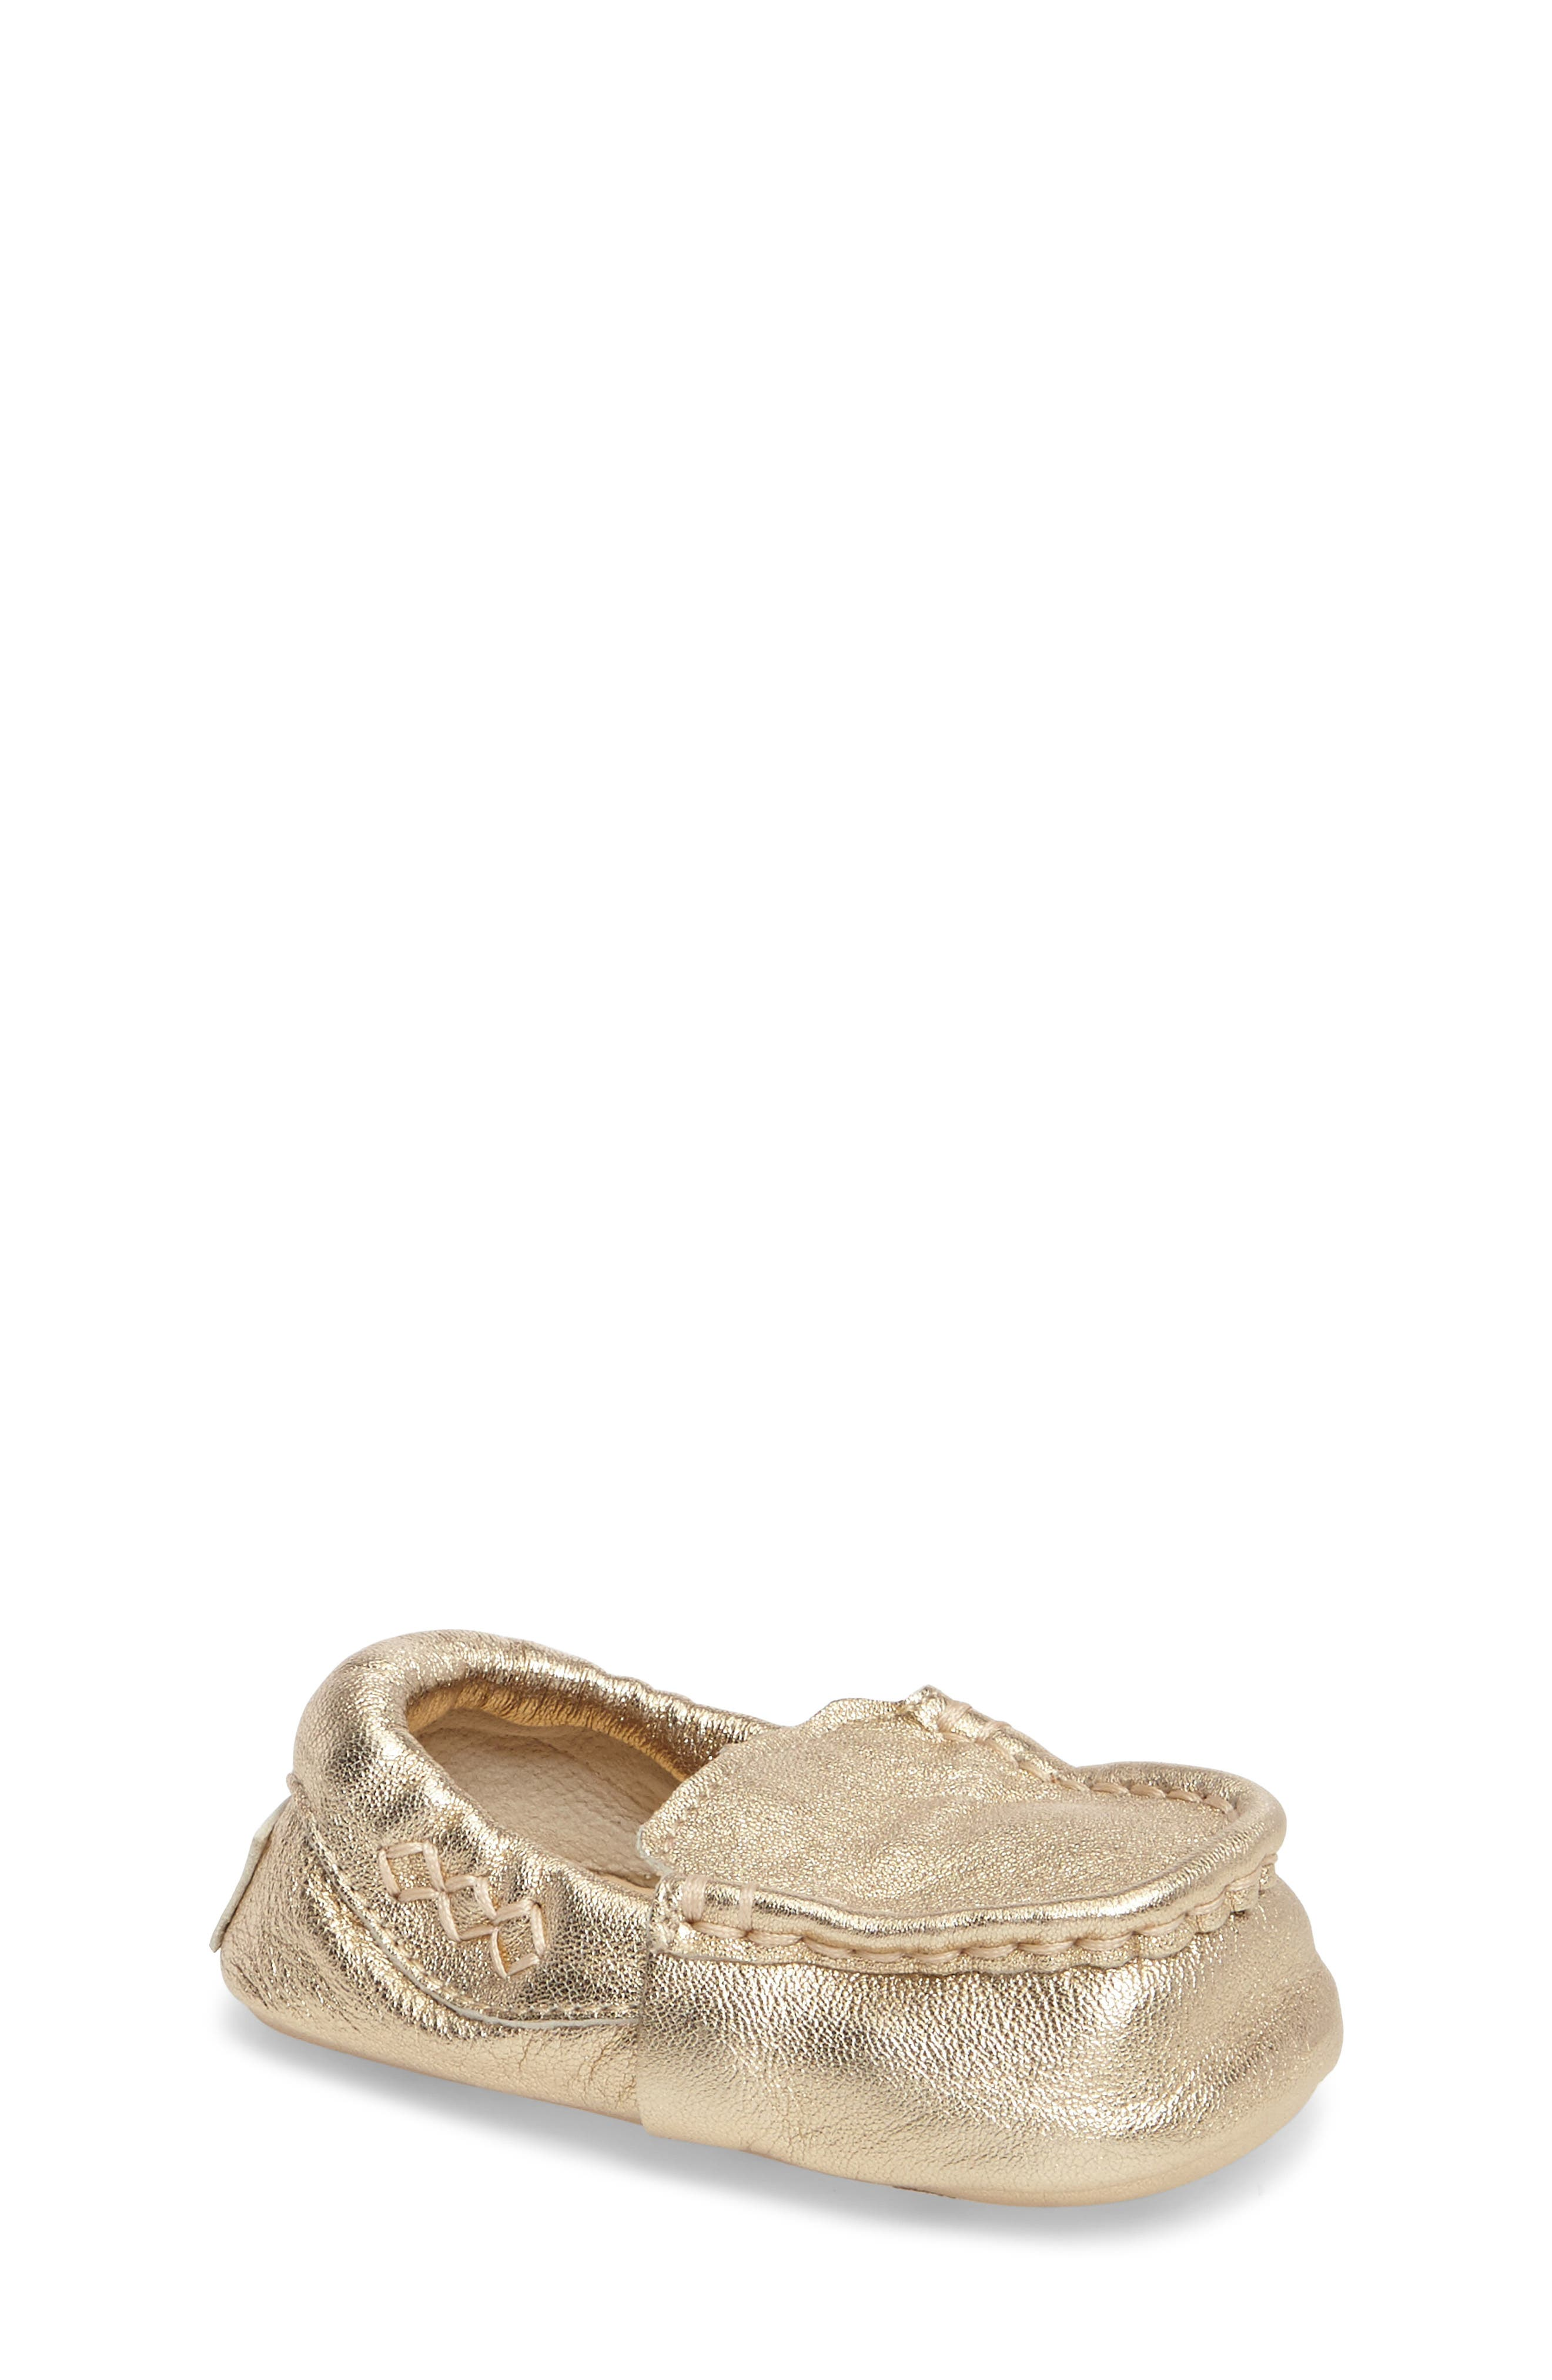 Sivia Metallic Loafer,                         Main,                         color, Gold